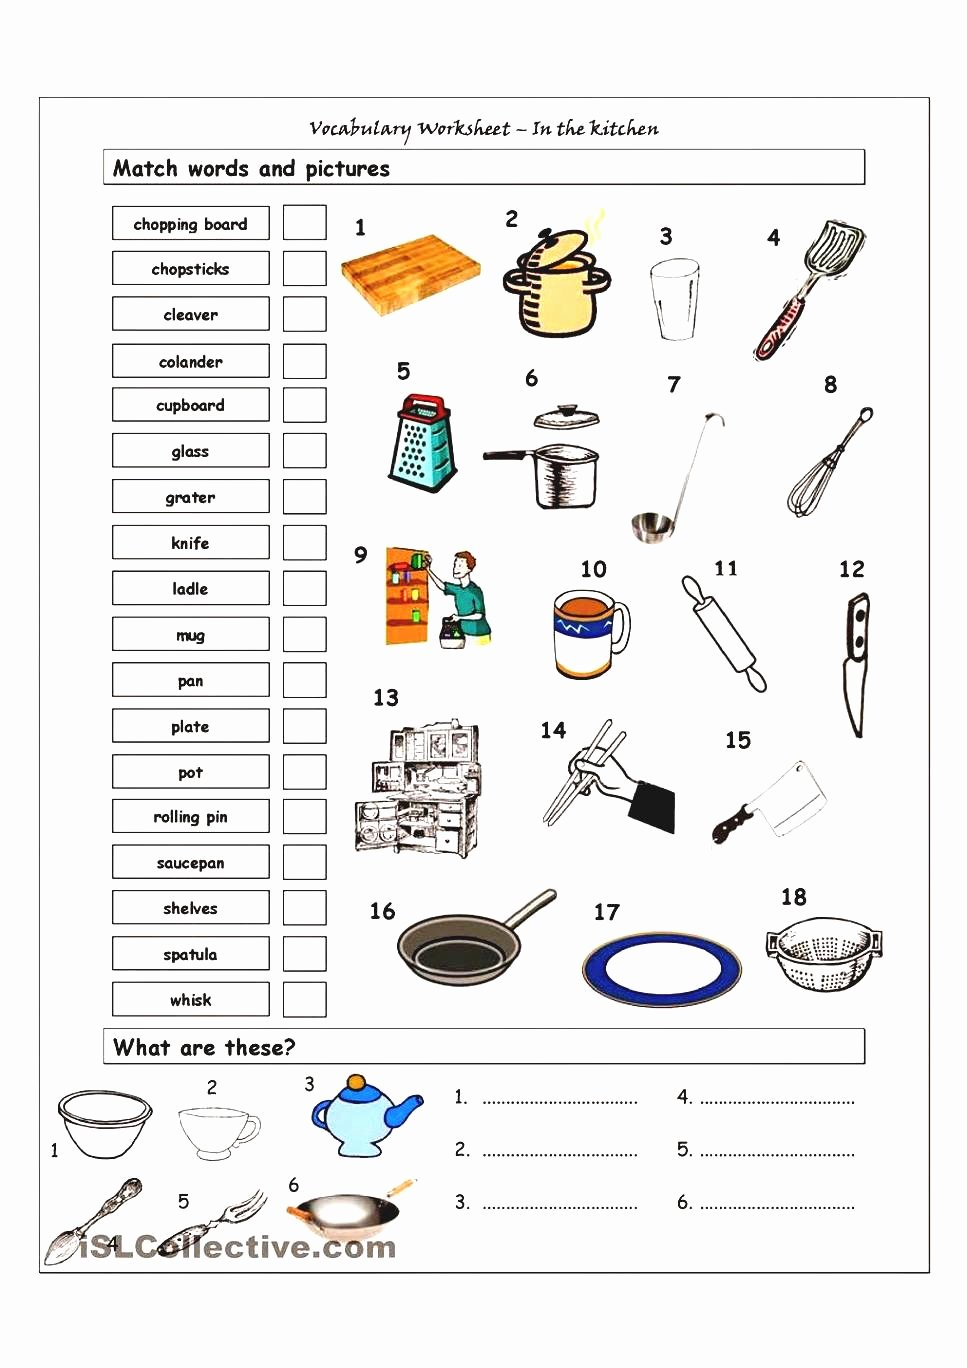 Basic Cooking Terms Worksheet Answers Unique Esl Going to Worksheets Family Tree Worksheet